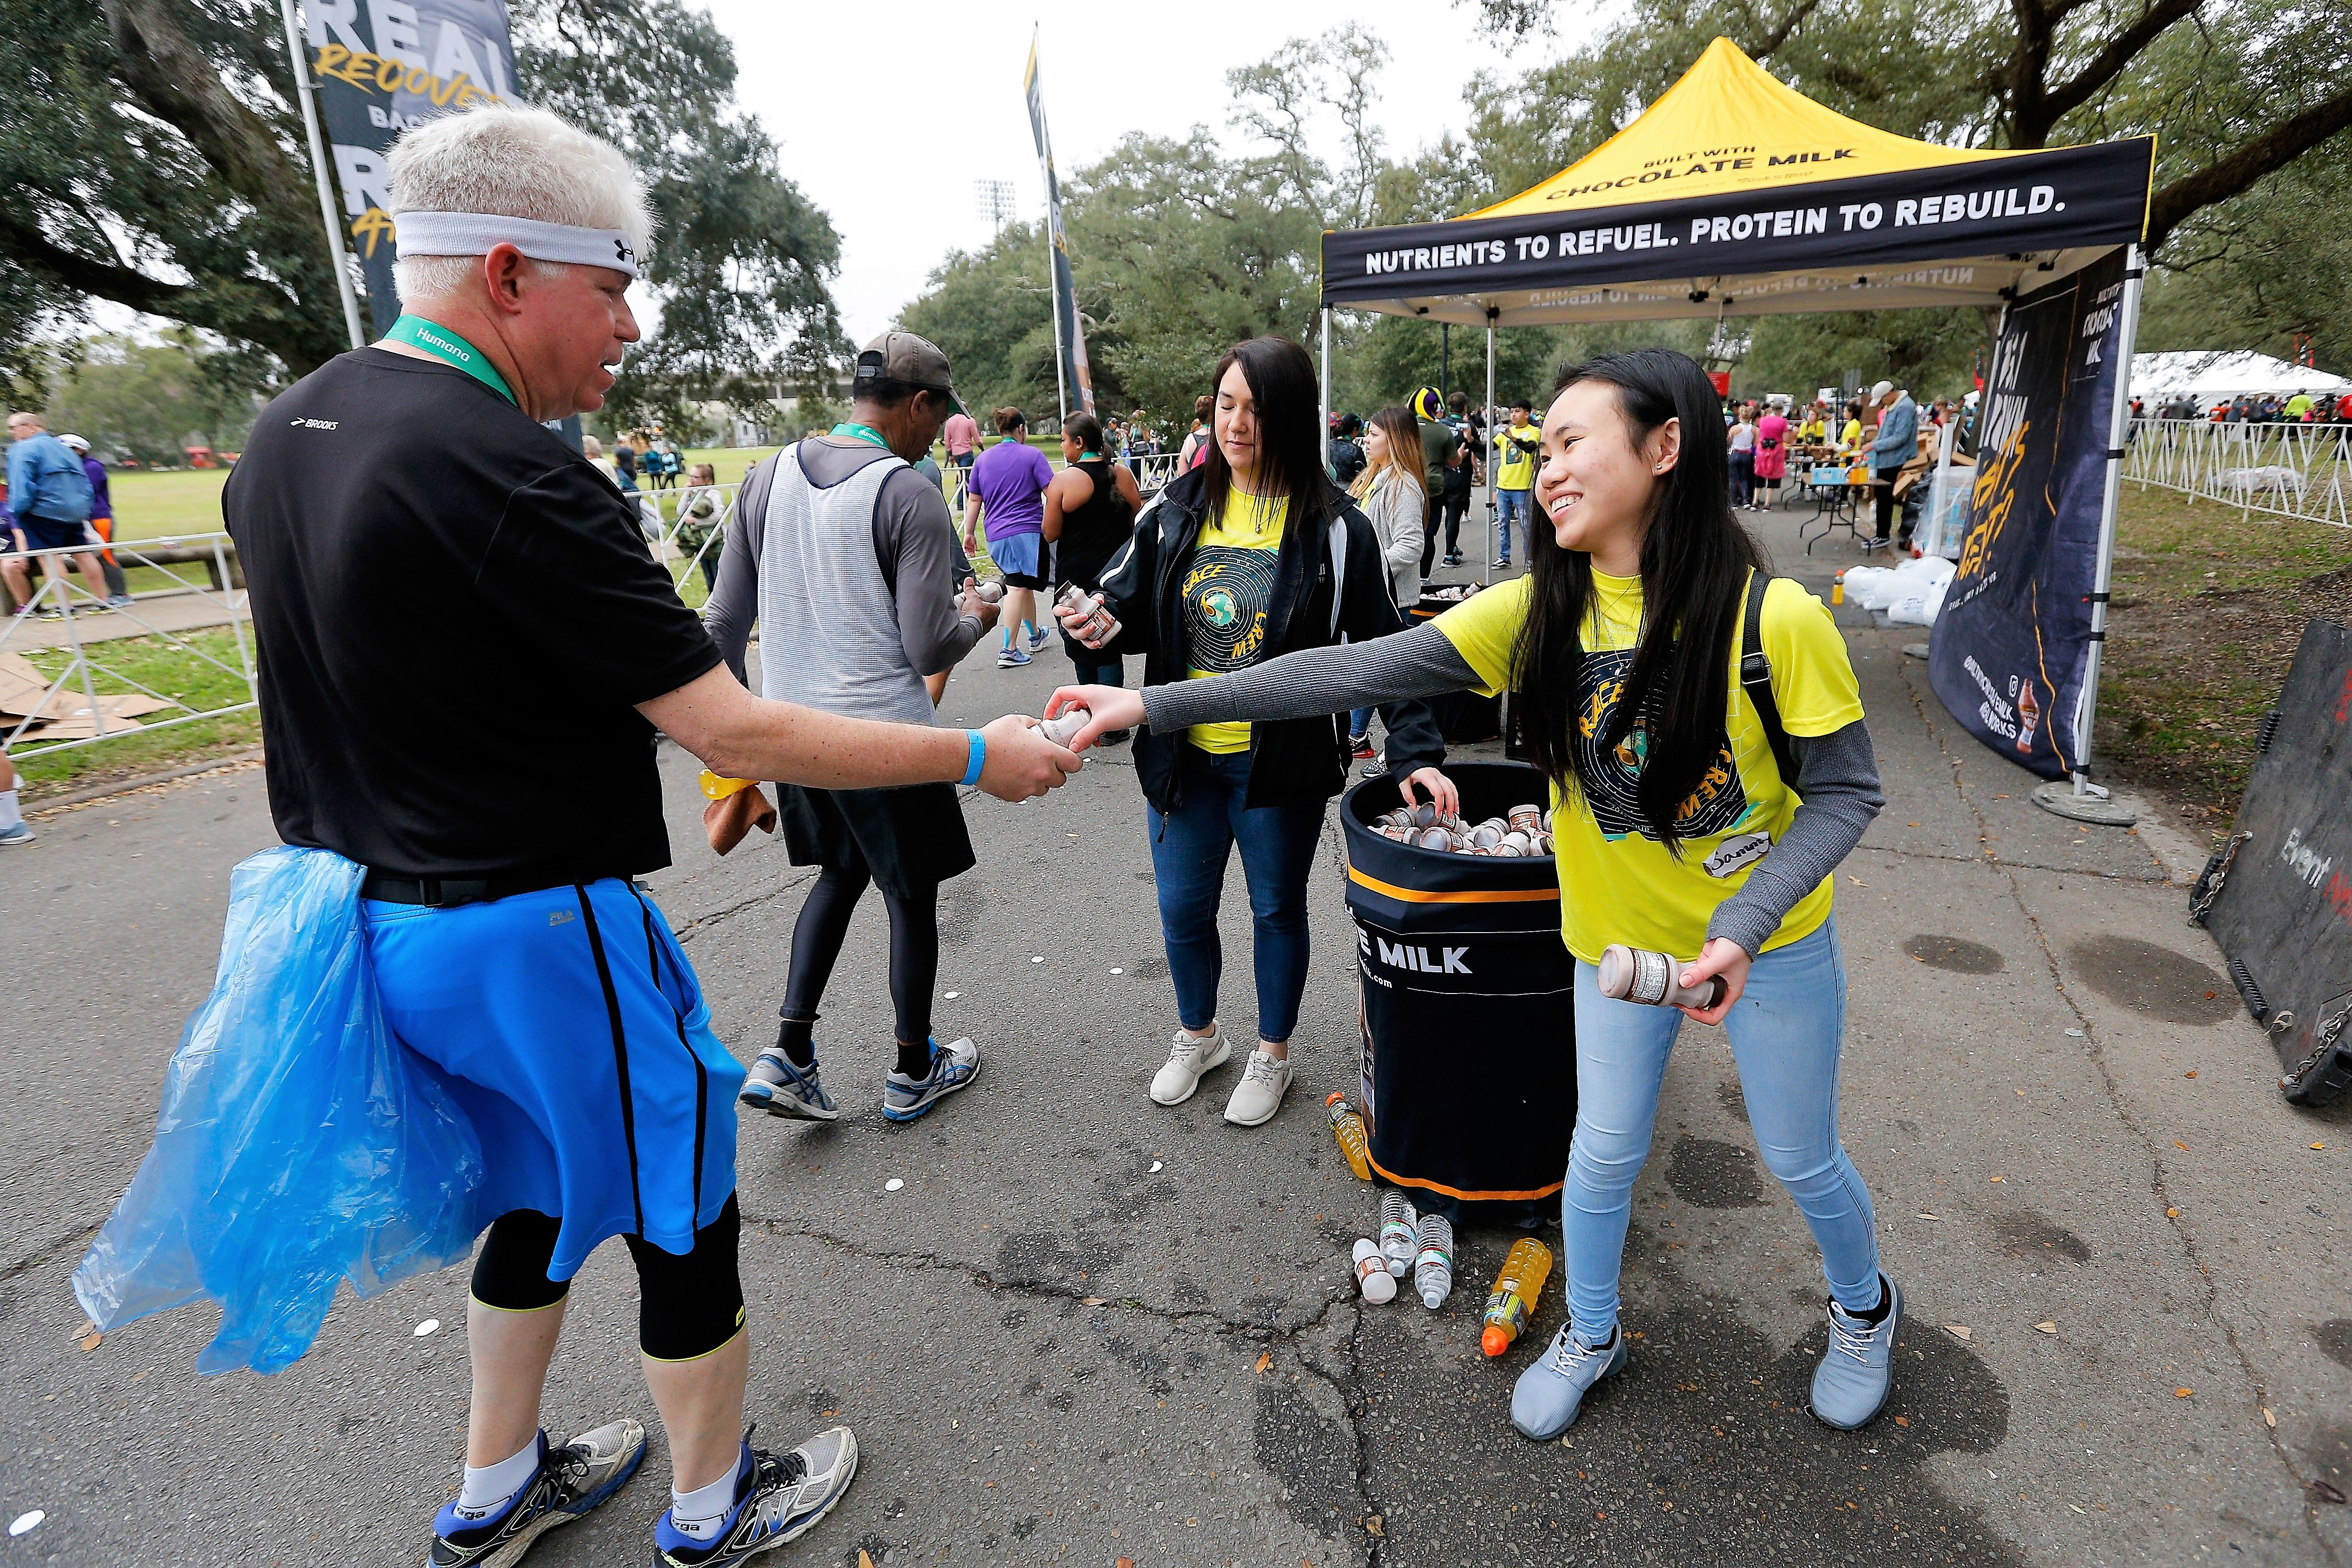 Volunteers Passing out Chocolate Milk to Runners